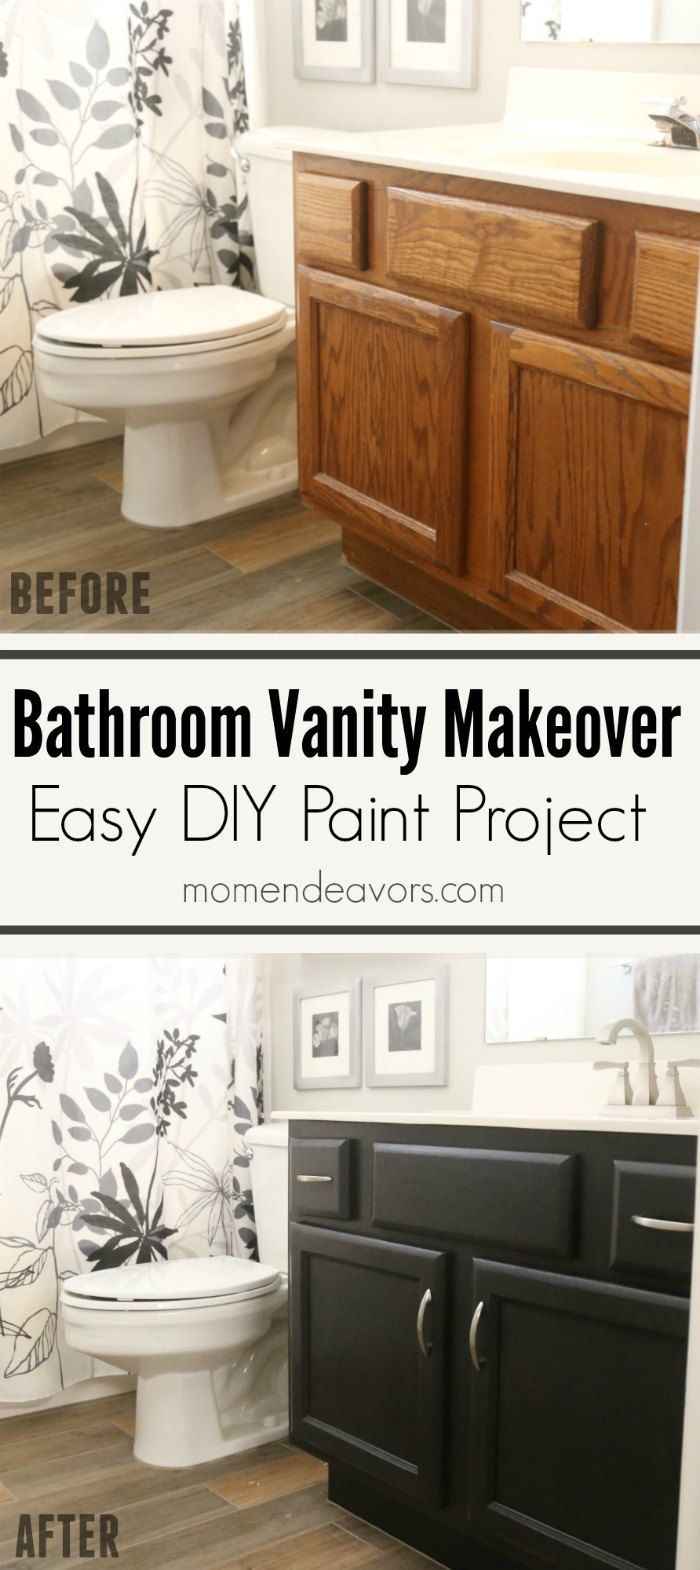 Make Over Bathroom Vanity Makeover Easy Diy Home Paint Project Paint